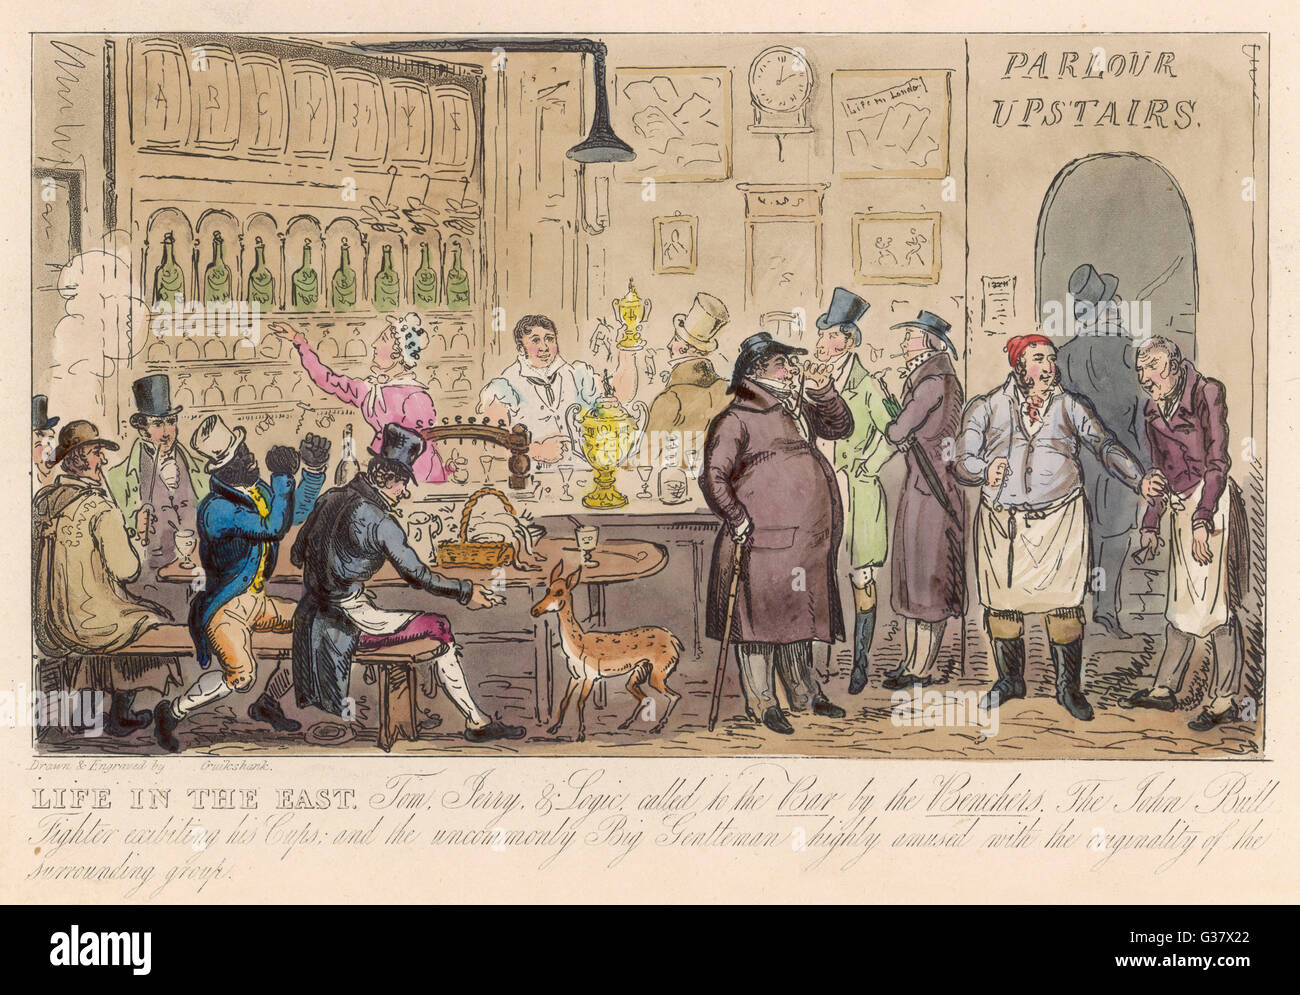 The clientele is varied inside  this pub in the East End of  London.       Date: 1828 - Stock Image